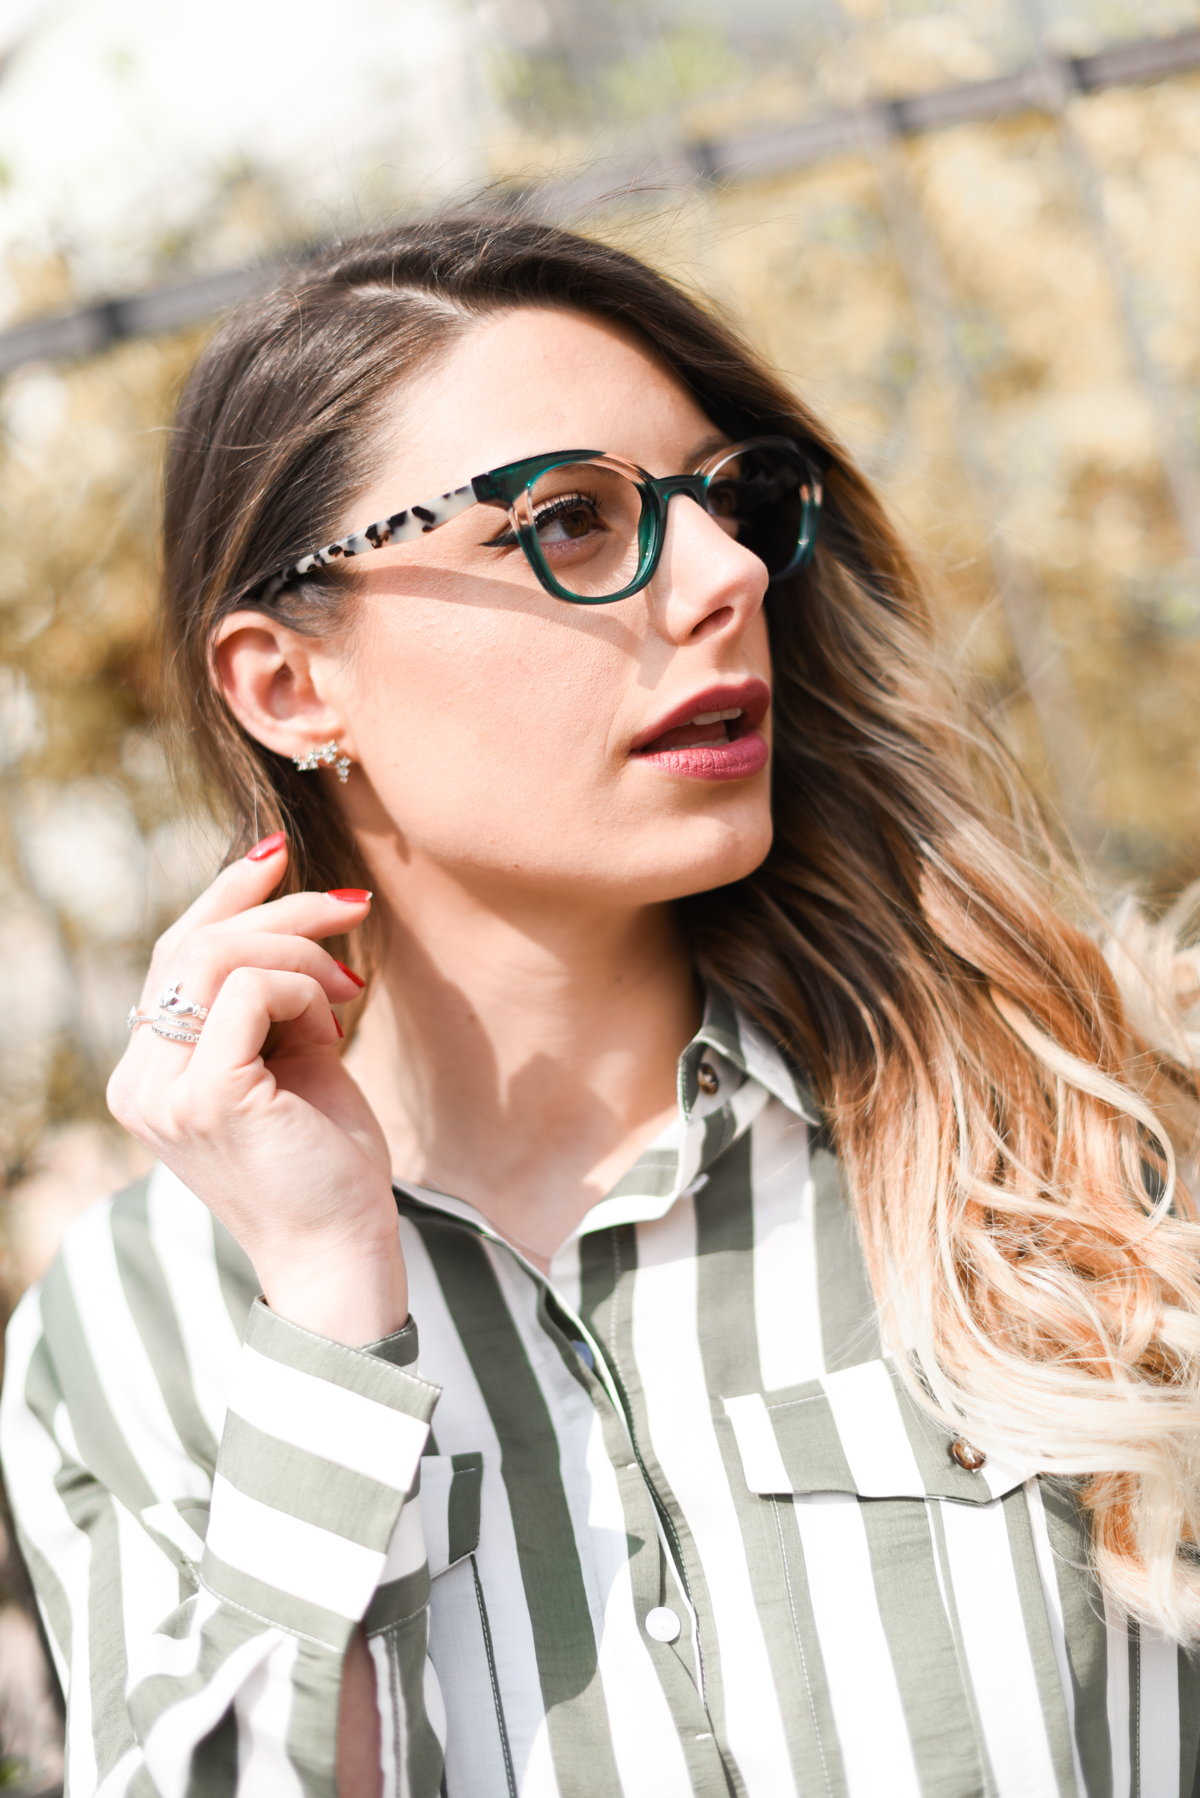 Giulia-de-martin-face-a-face-eyeglasses-lunettes-2018-french-eyewear-BLAST-1-2-blog-eyewear-behind-my-glasses-influncer-blog Face à Face Eyewear Blast